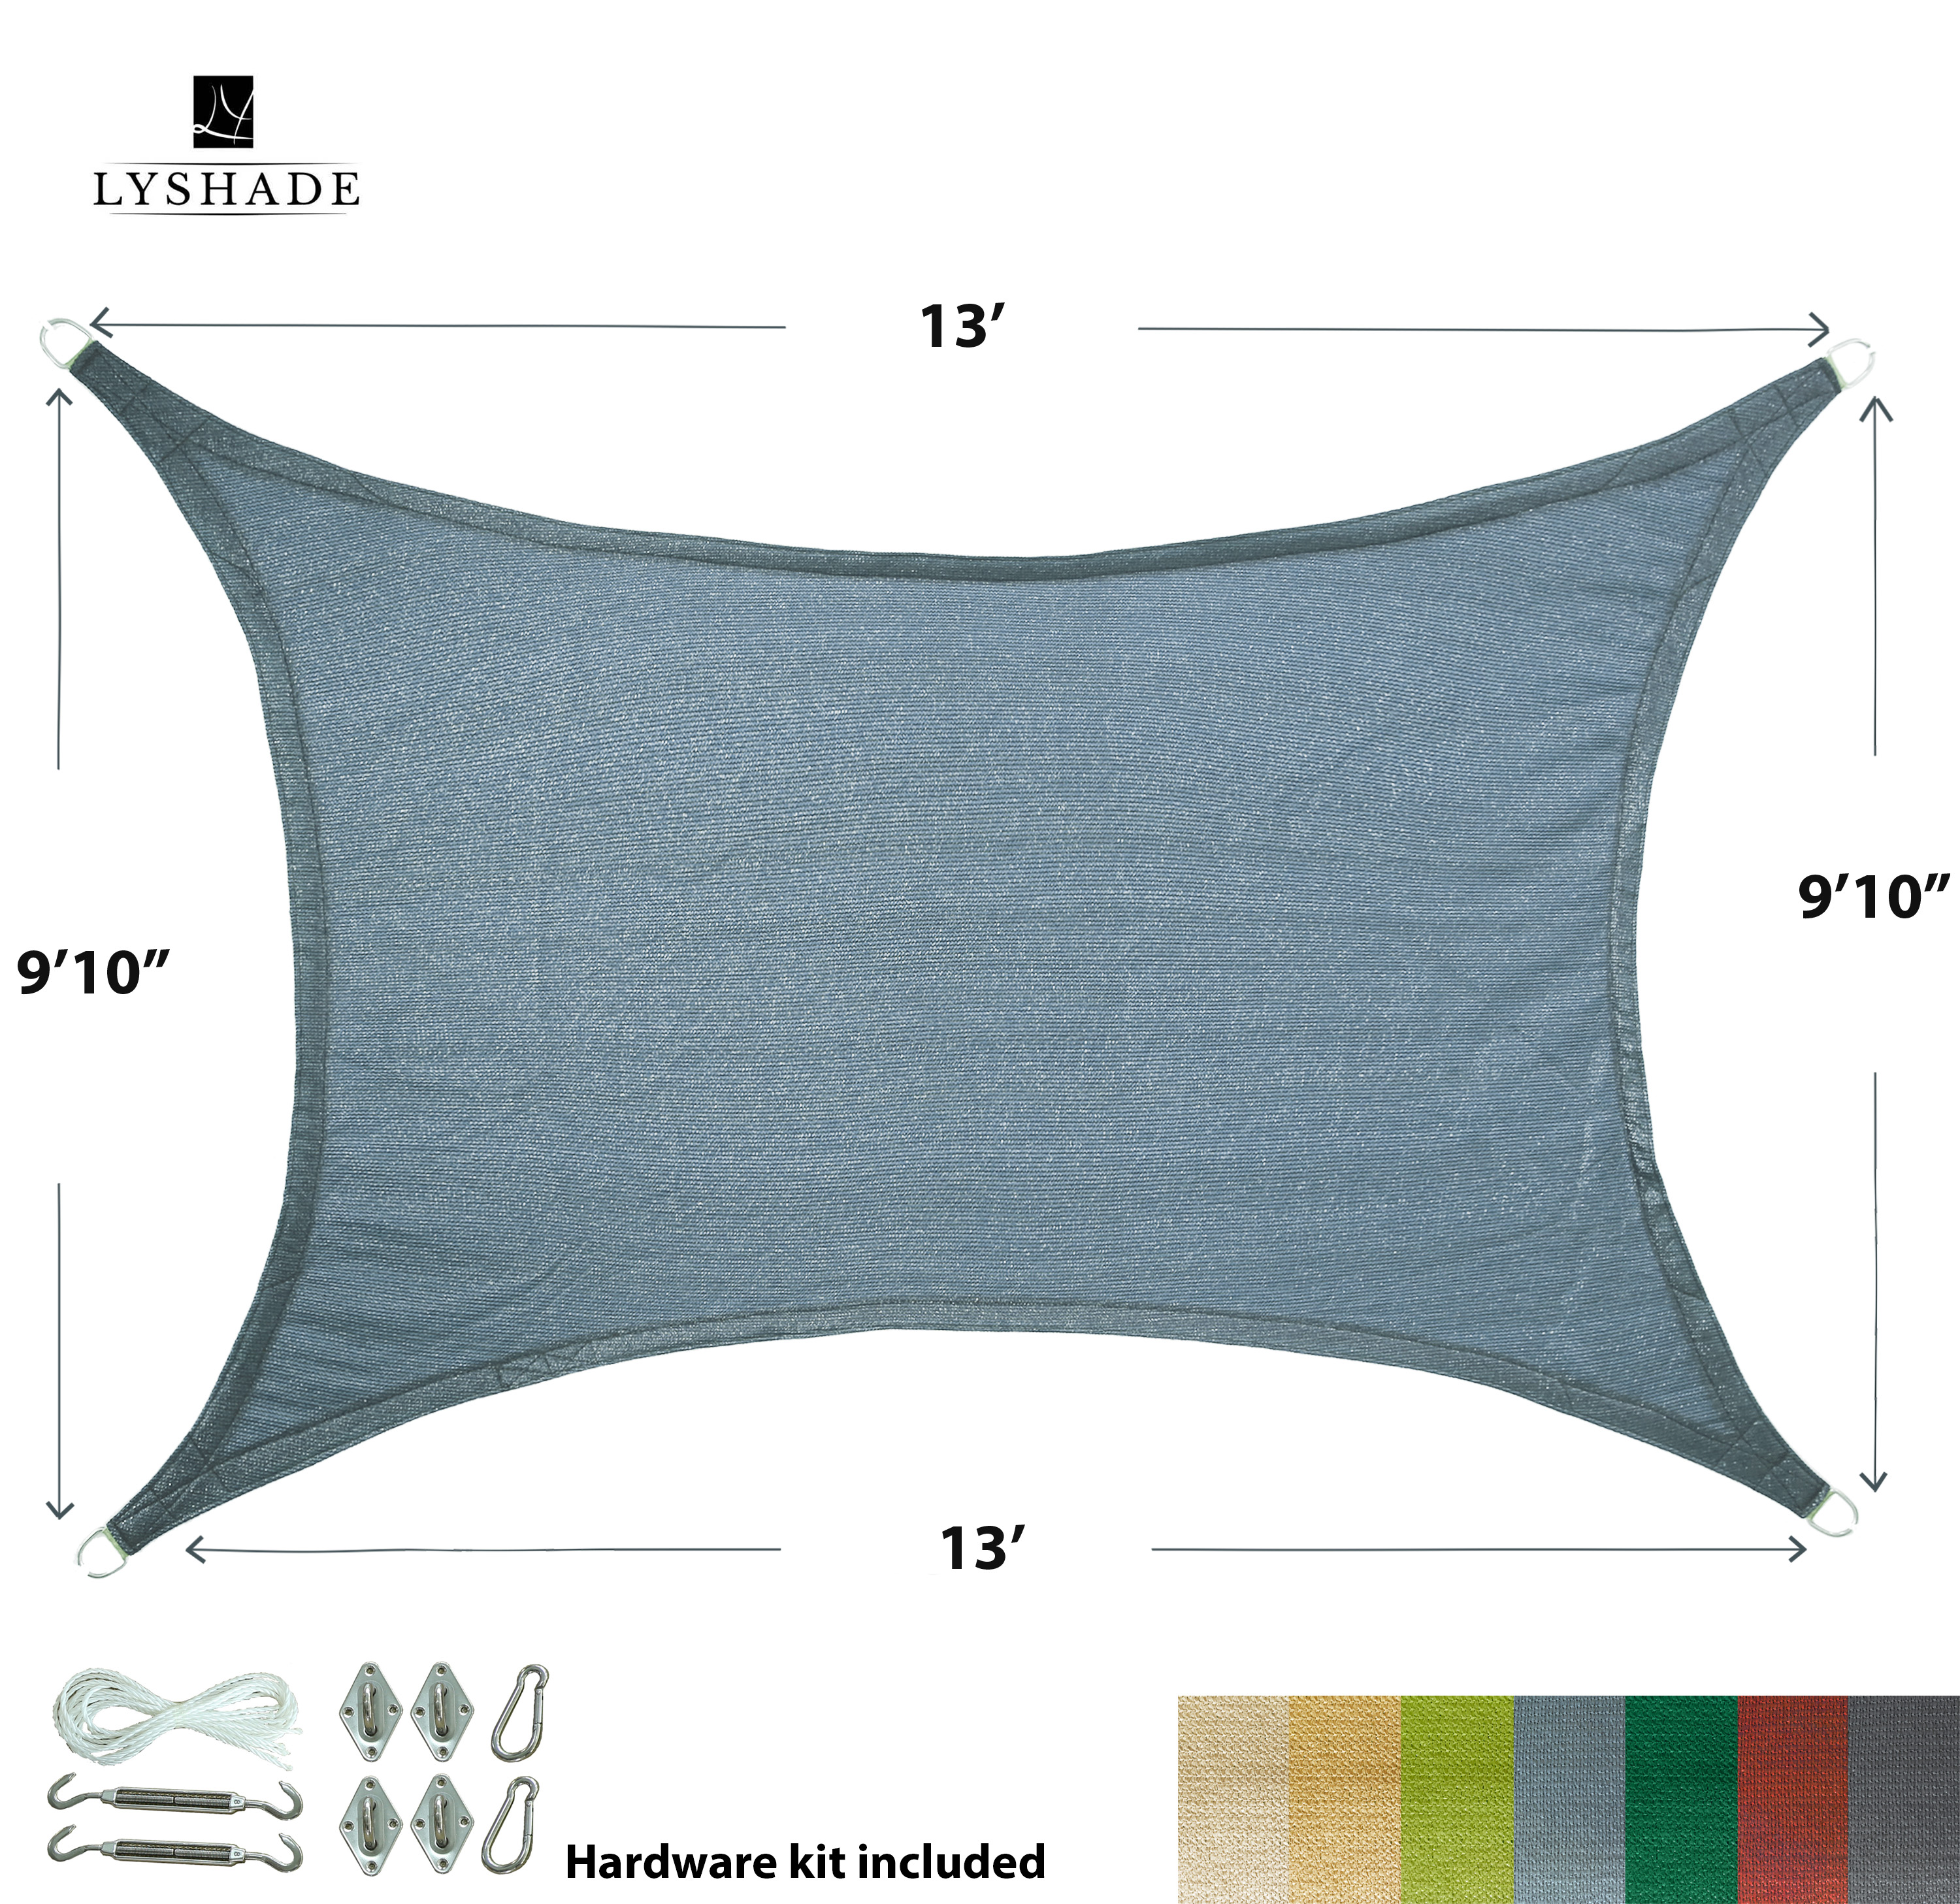 """LyShade 19'8"""" x 13' Rectangle Sun Shade Sail Canopy with Stainless Steel Hardware Kit - UV Block for Patio and Outdoor"""